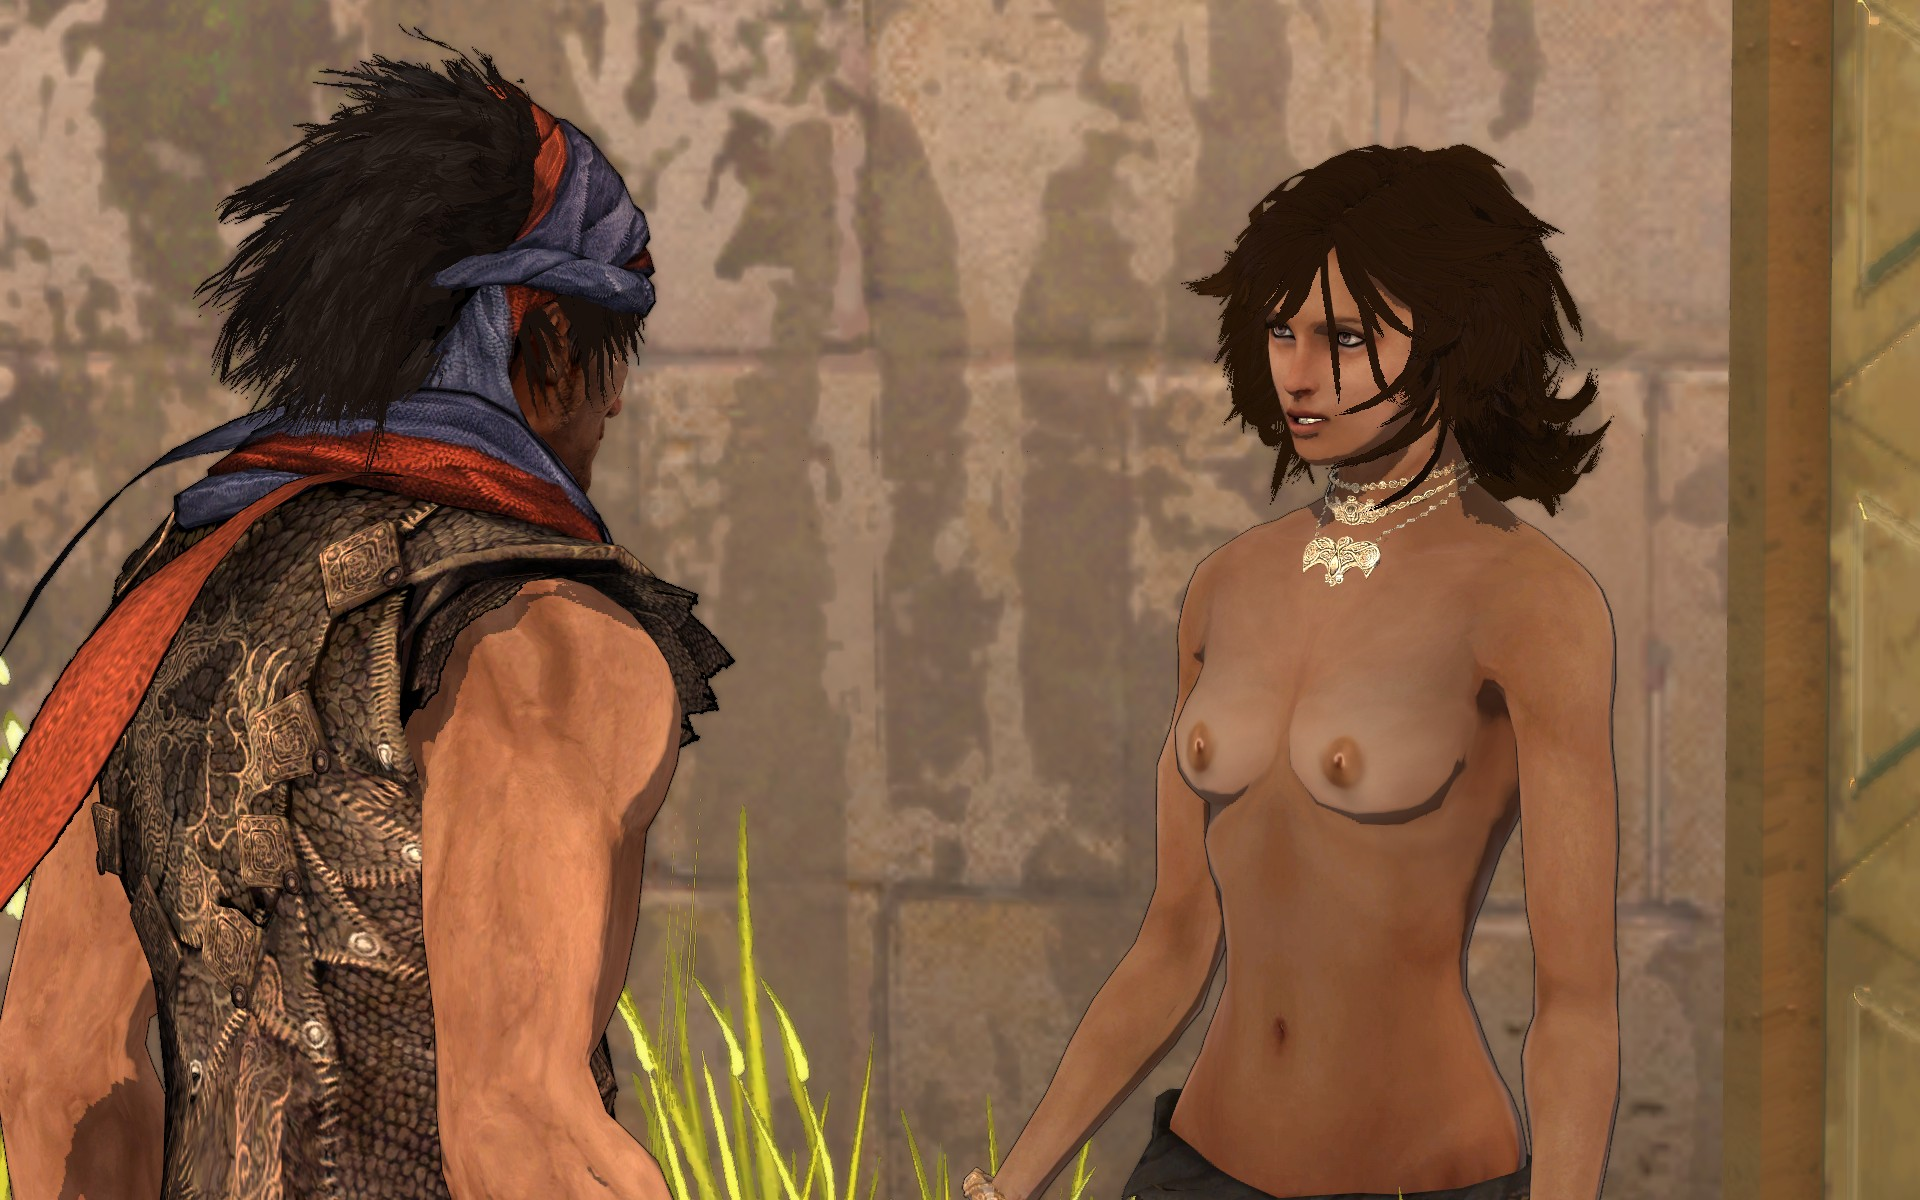 Prince of persia game sex pics xxx pictures